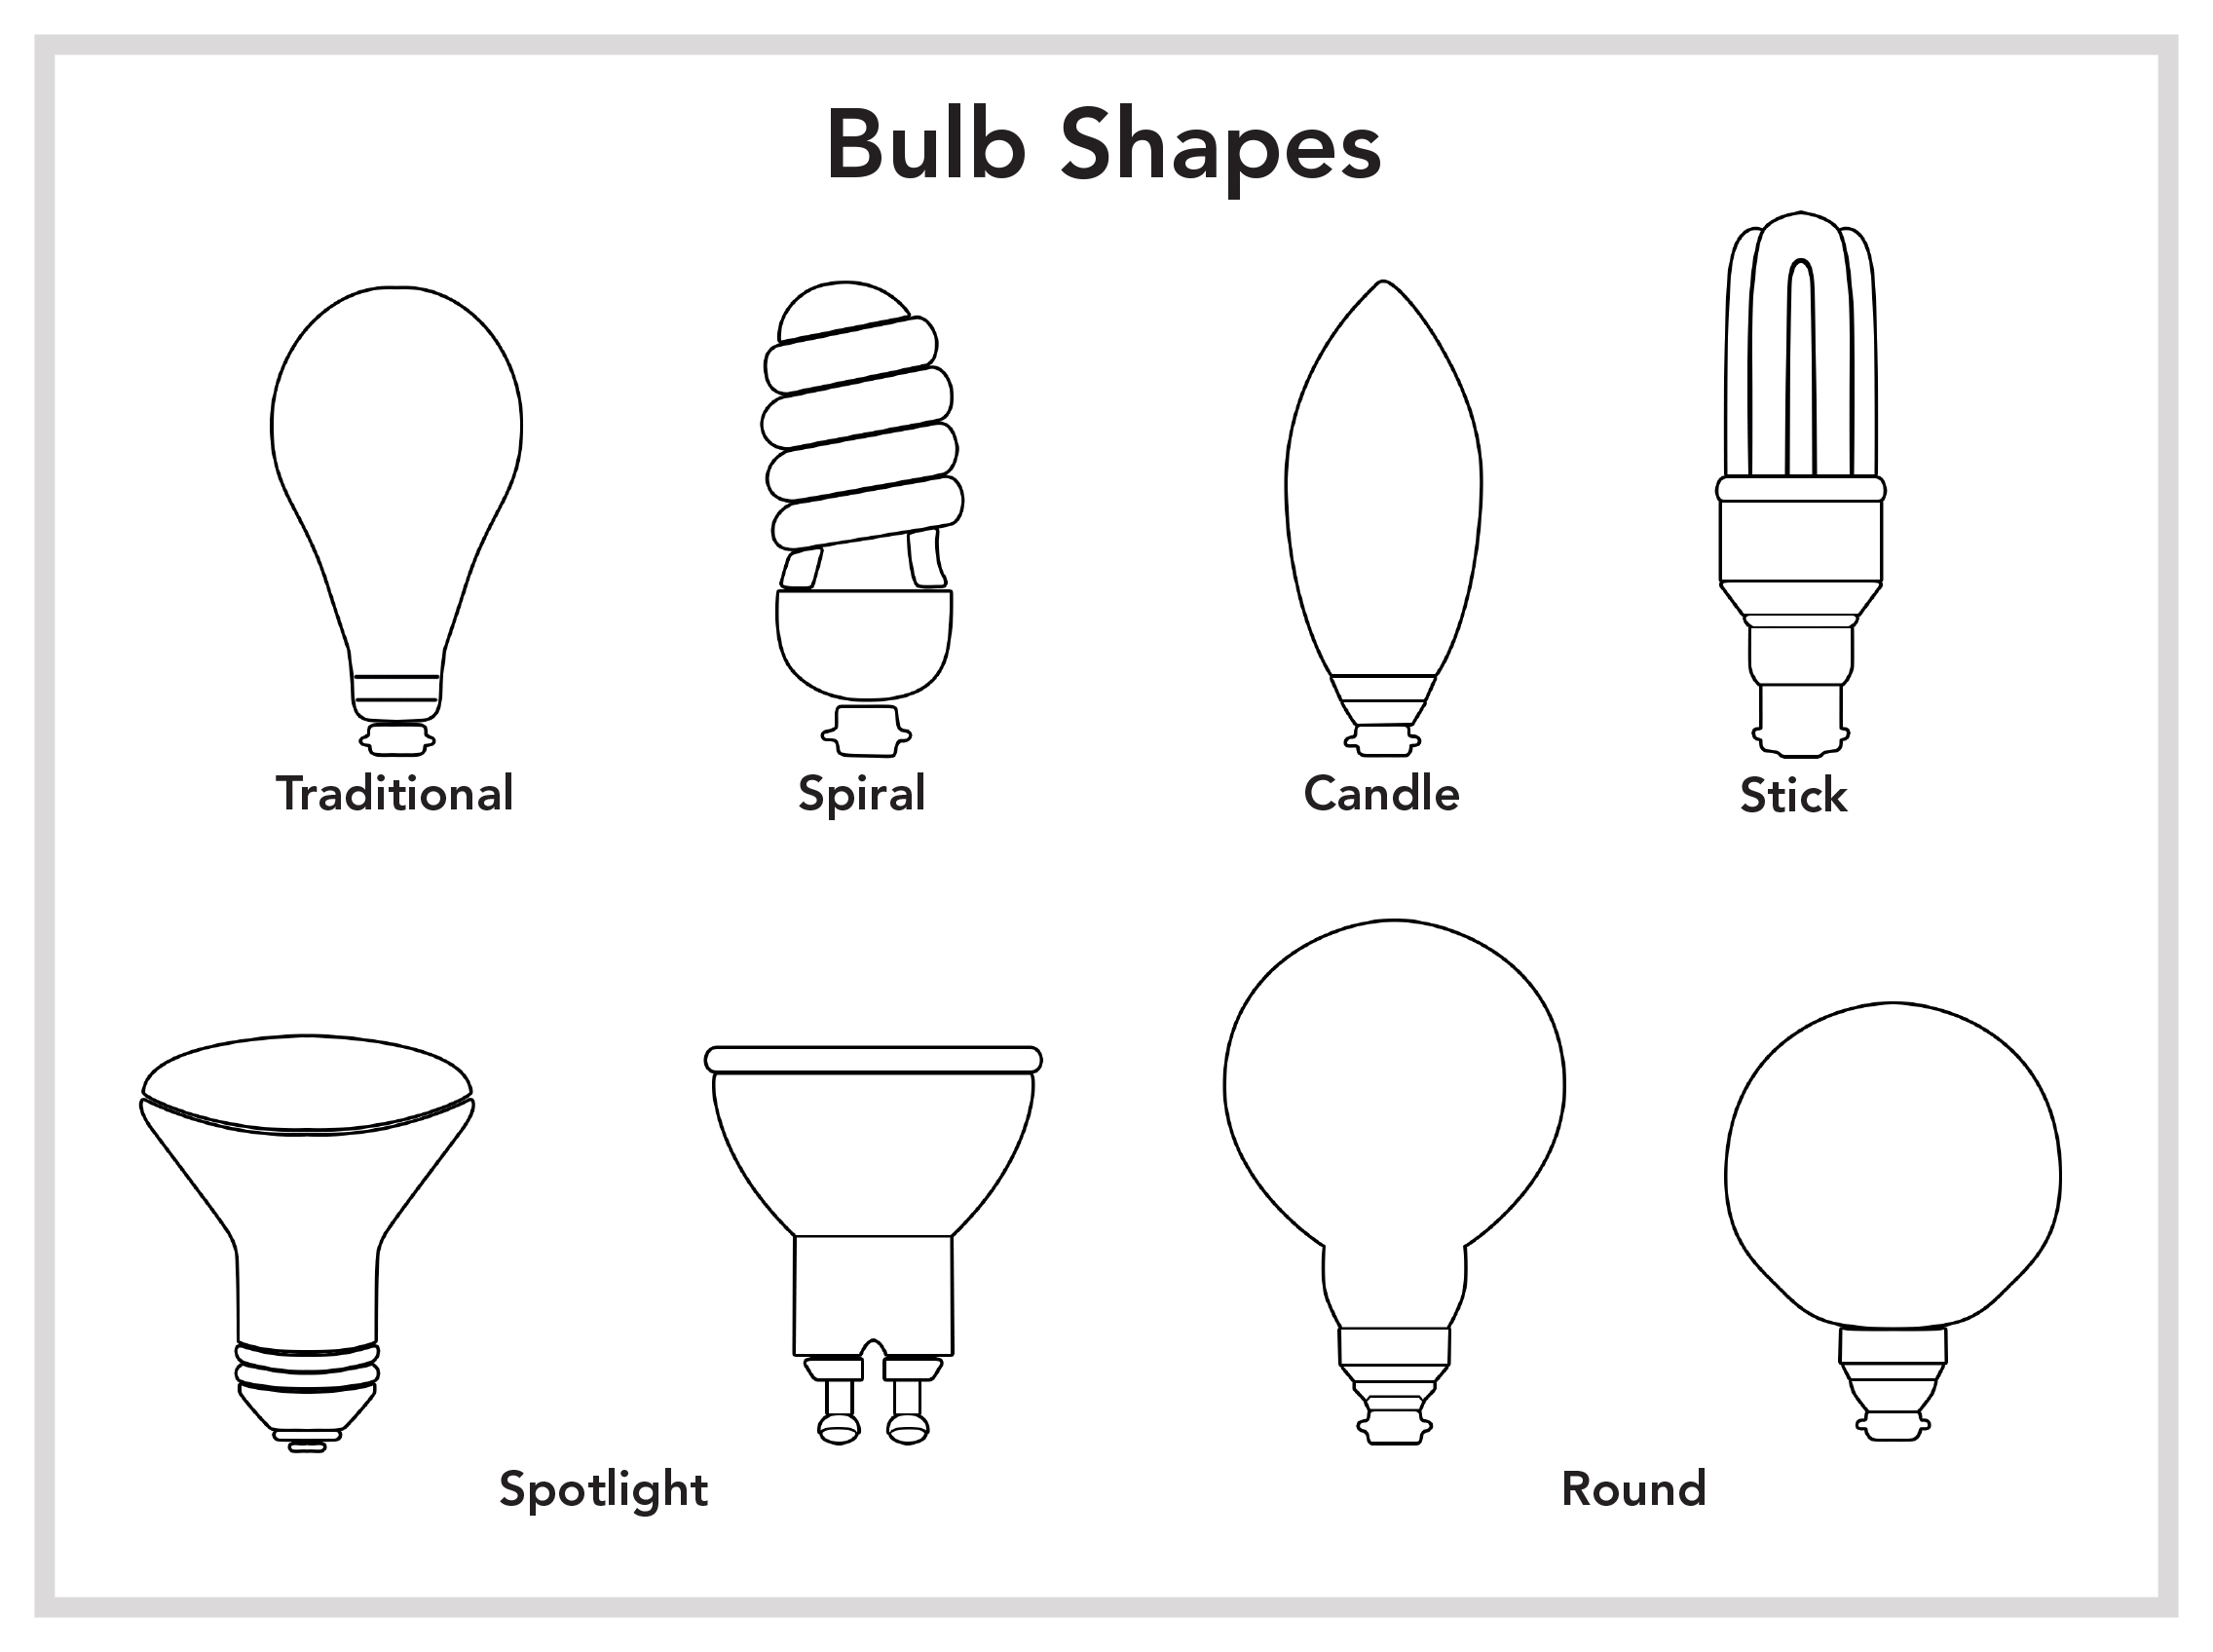 Switched On Your Guide To Choosing The Right Light Bulb